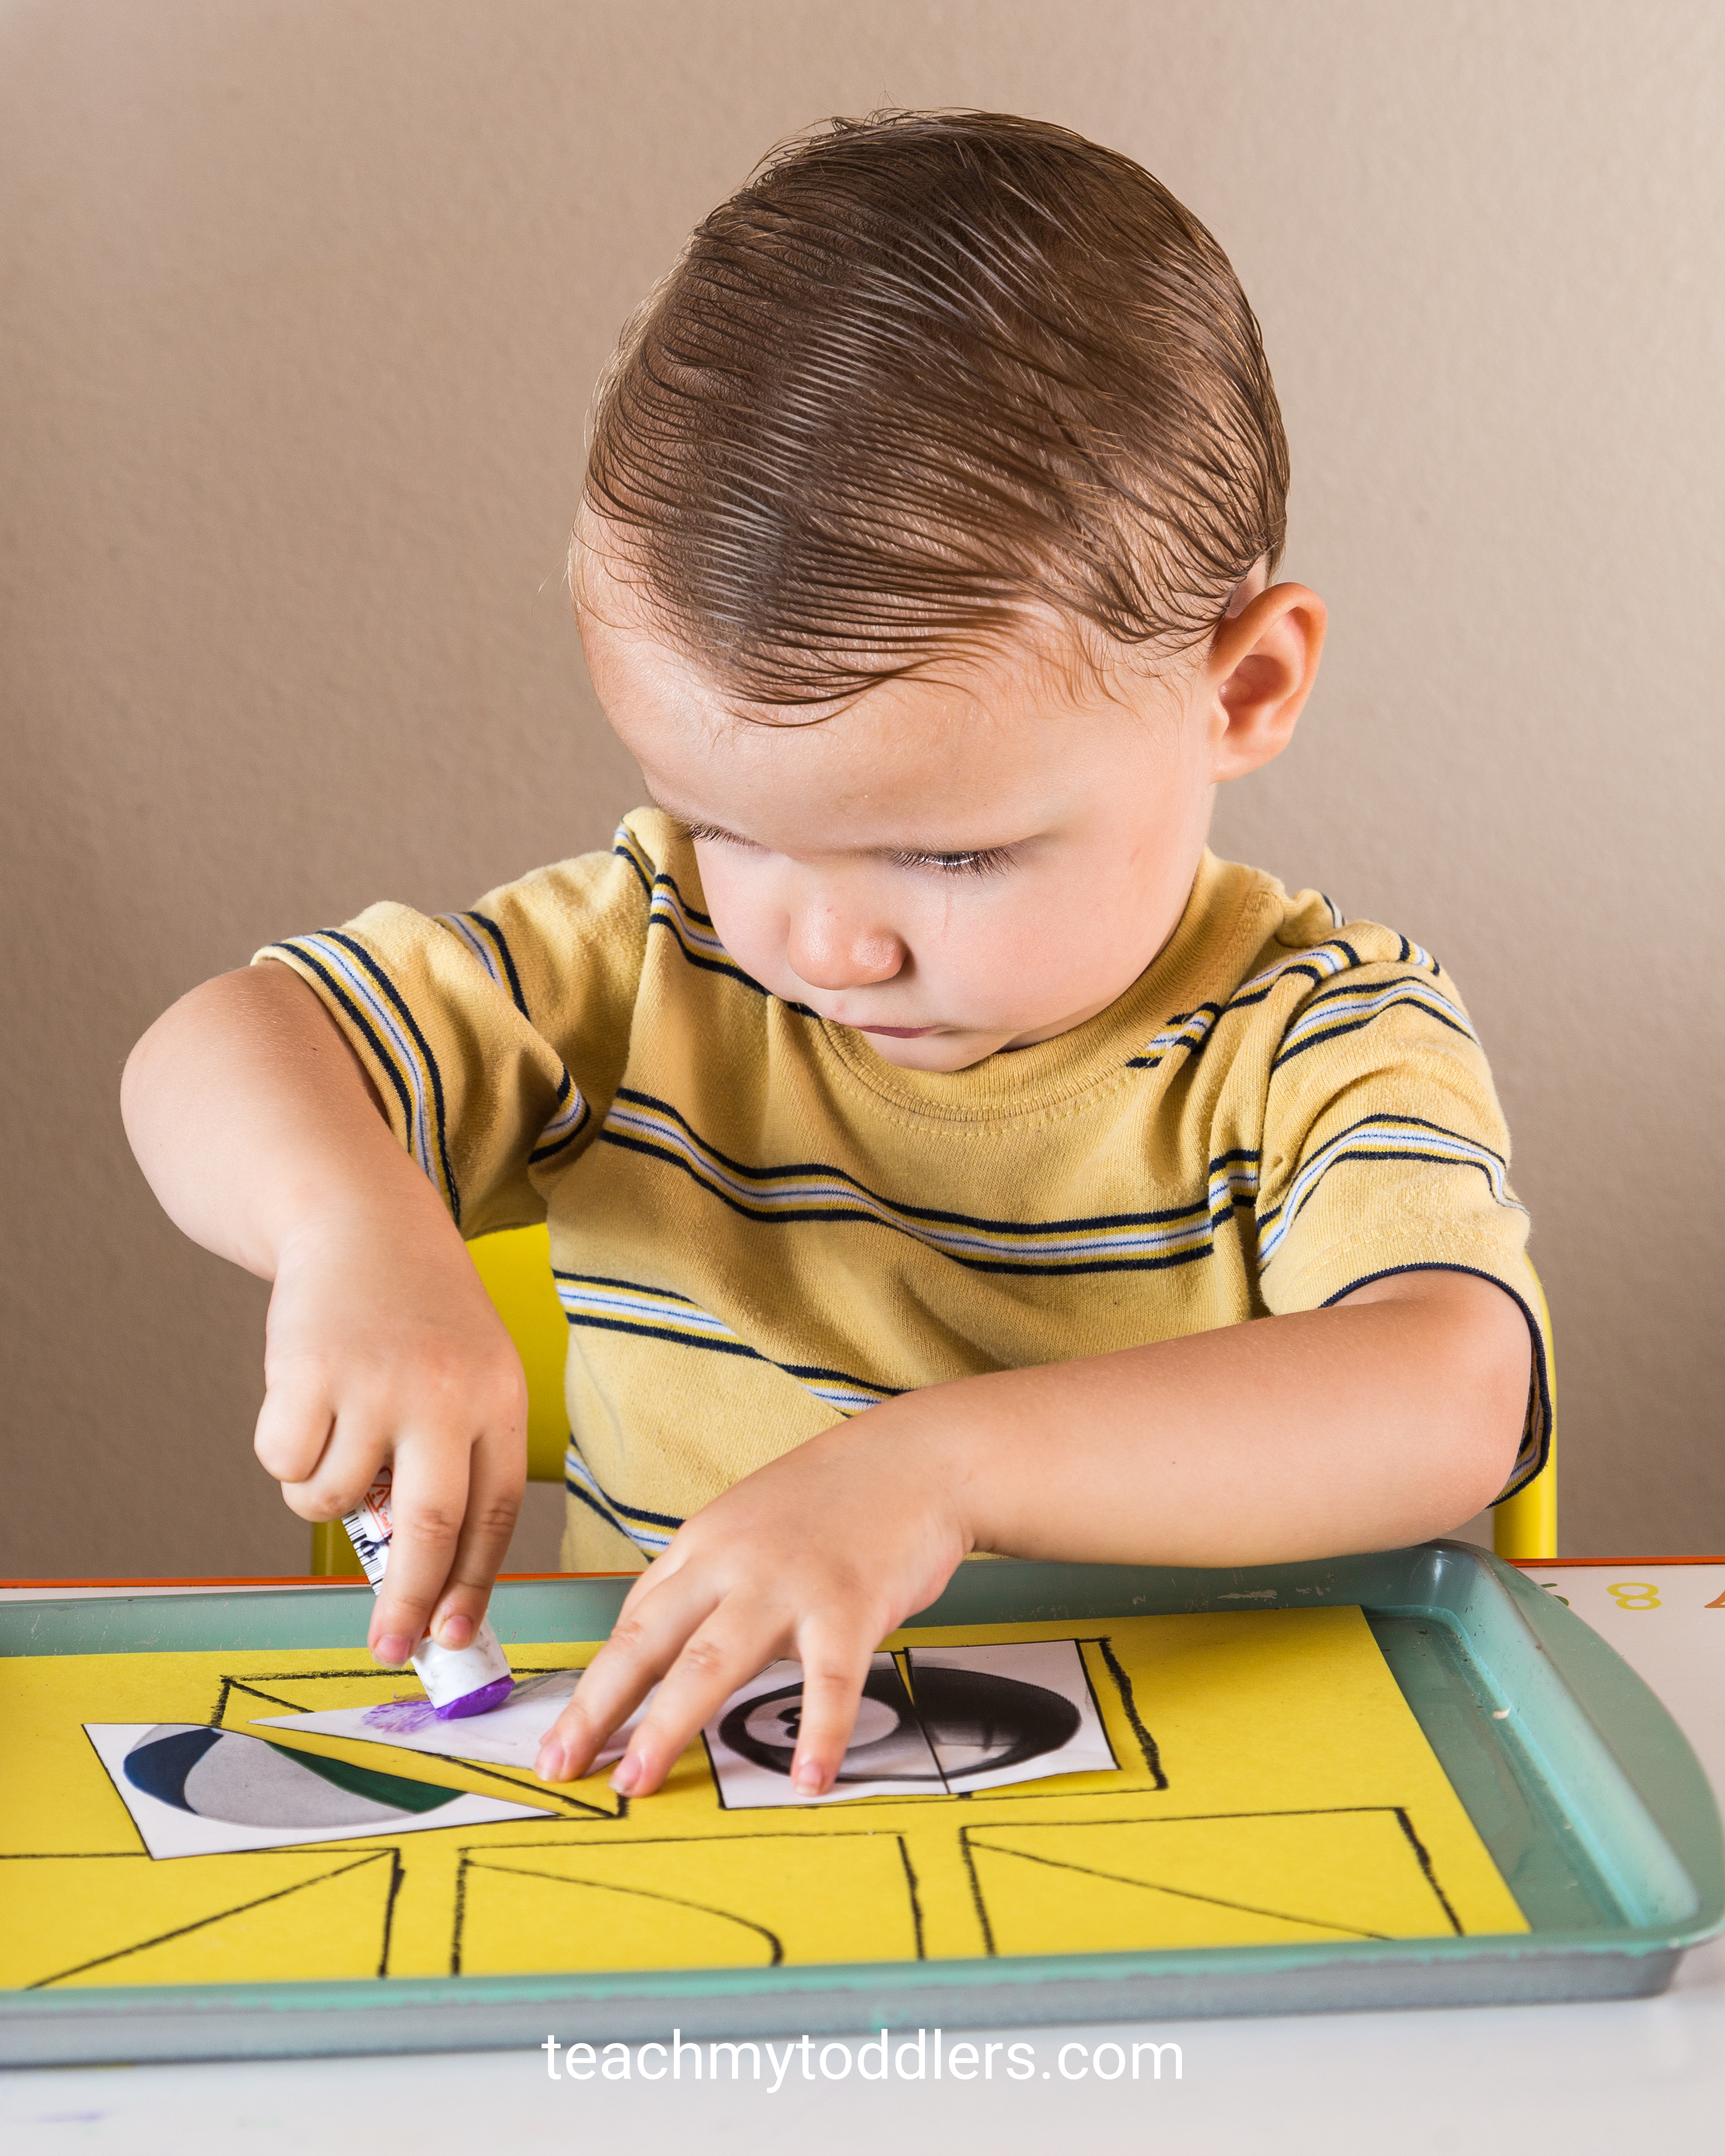 Use these awesome circle toddler trays to teach your toddlers shapes